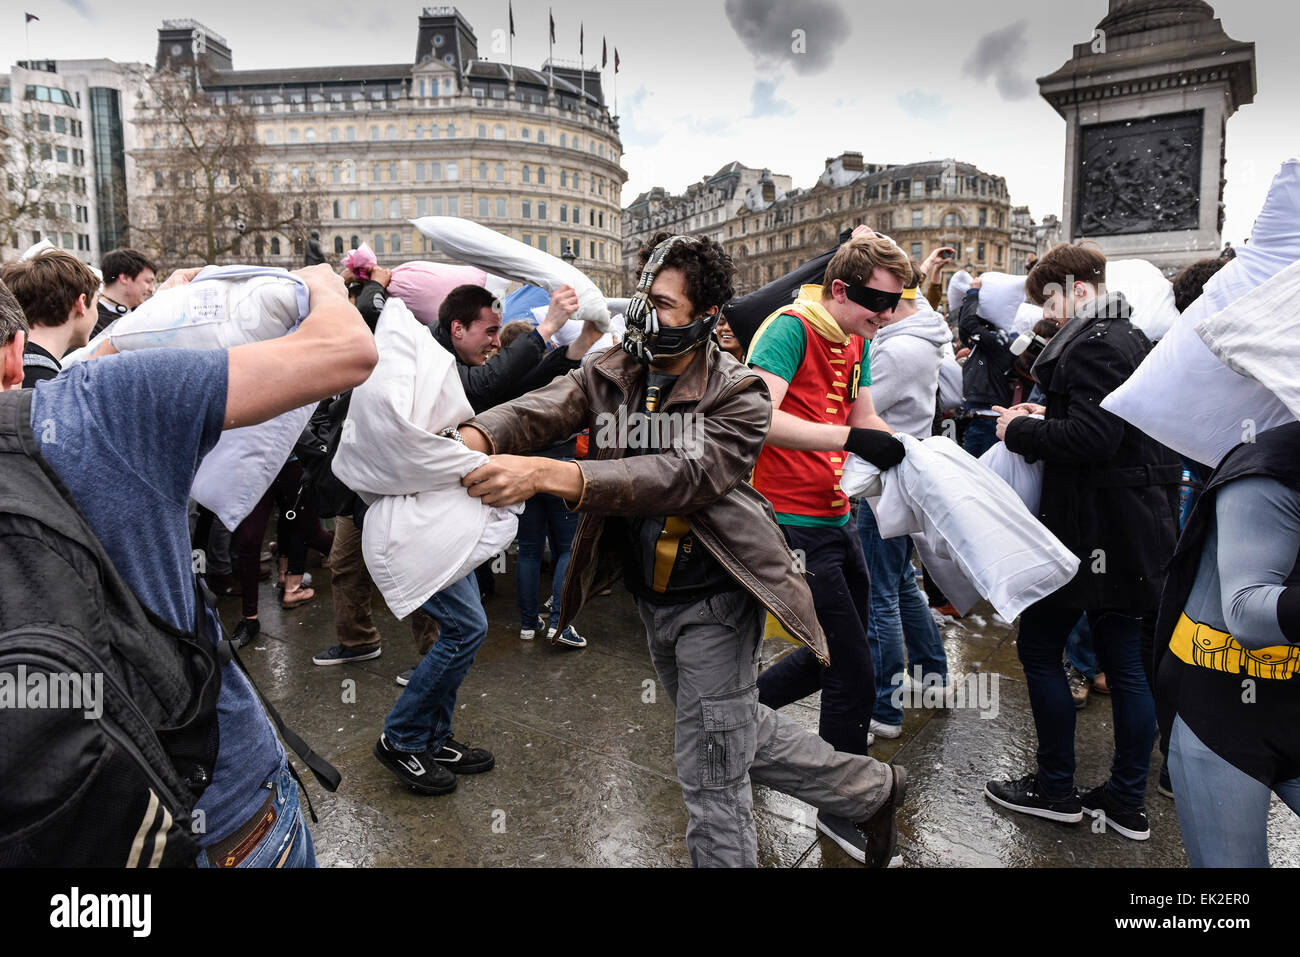 The International Pillow Fight day in Trafalgar Square, London. - Stock Image